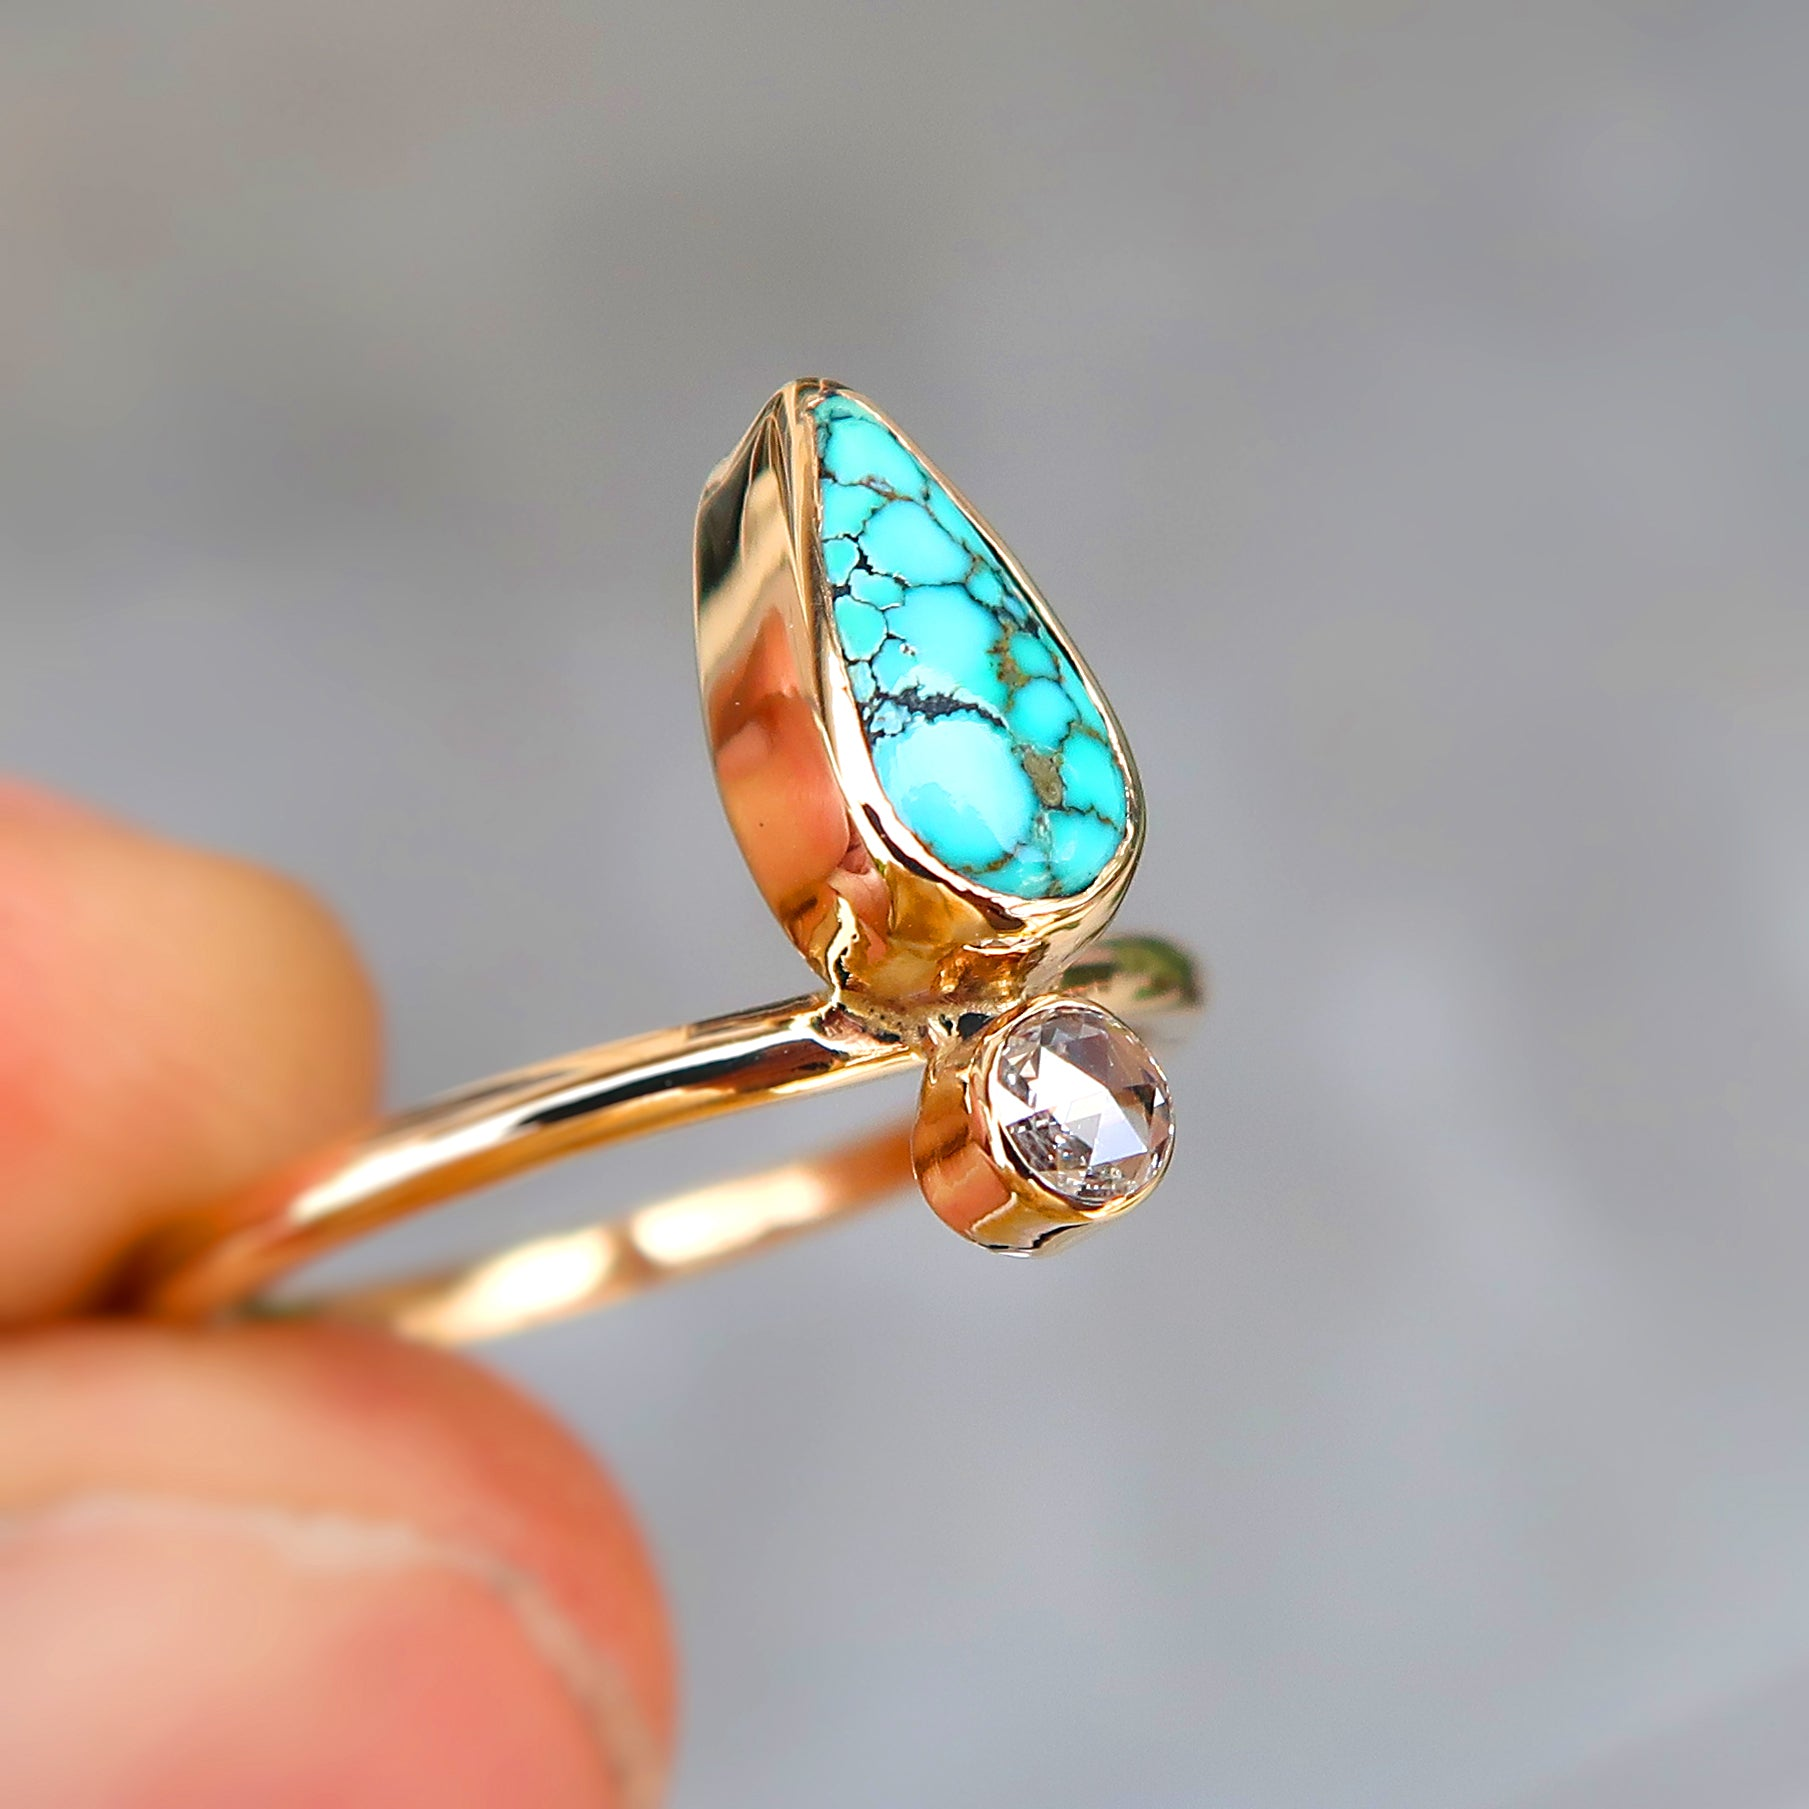 Details about  /Solid 14k Yellow Gold Handmade Jewelry Turquoise Slice Rose Cut Diamond Ring